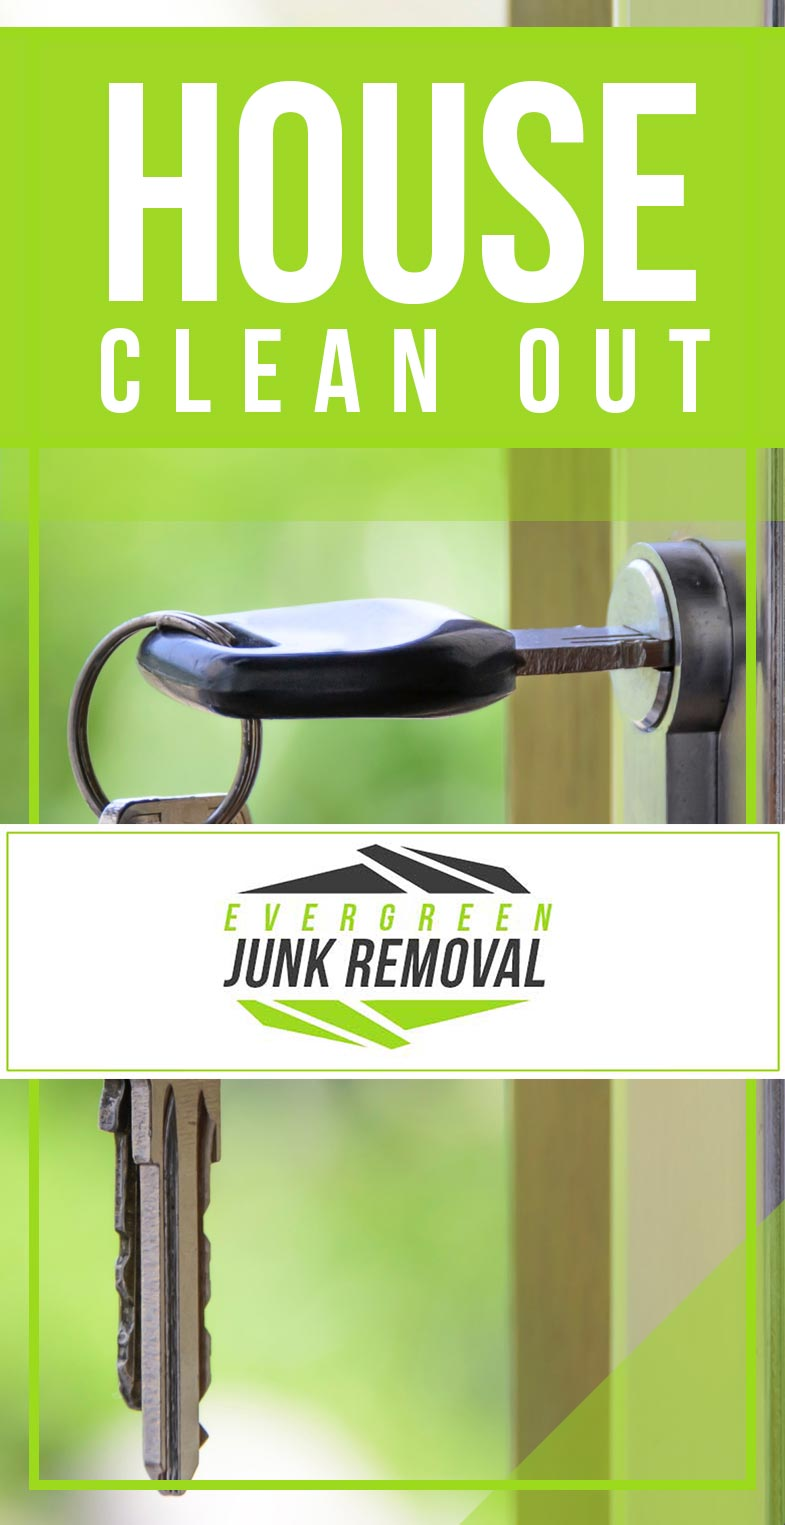 Junk Removal Dania Beach House Clean Out